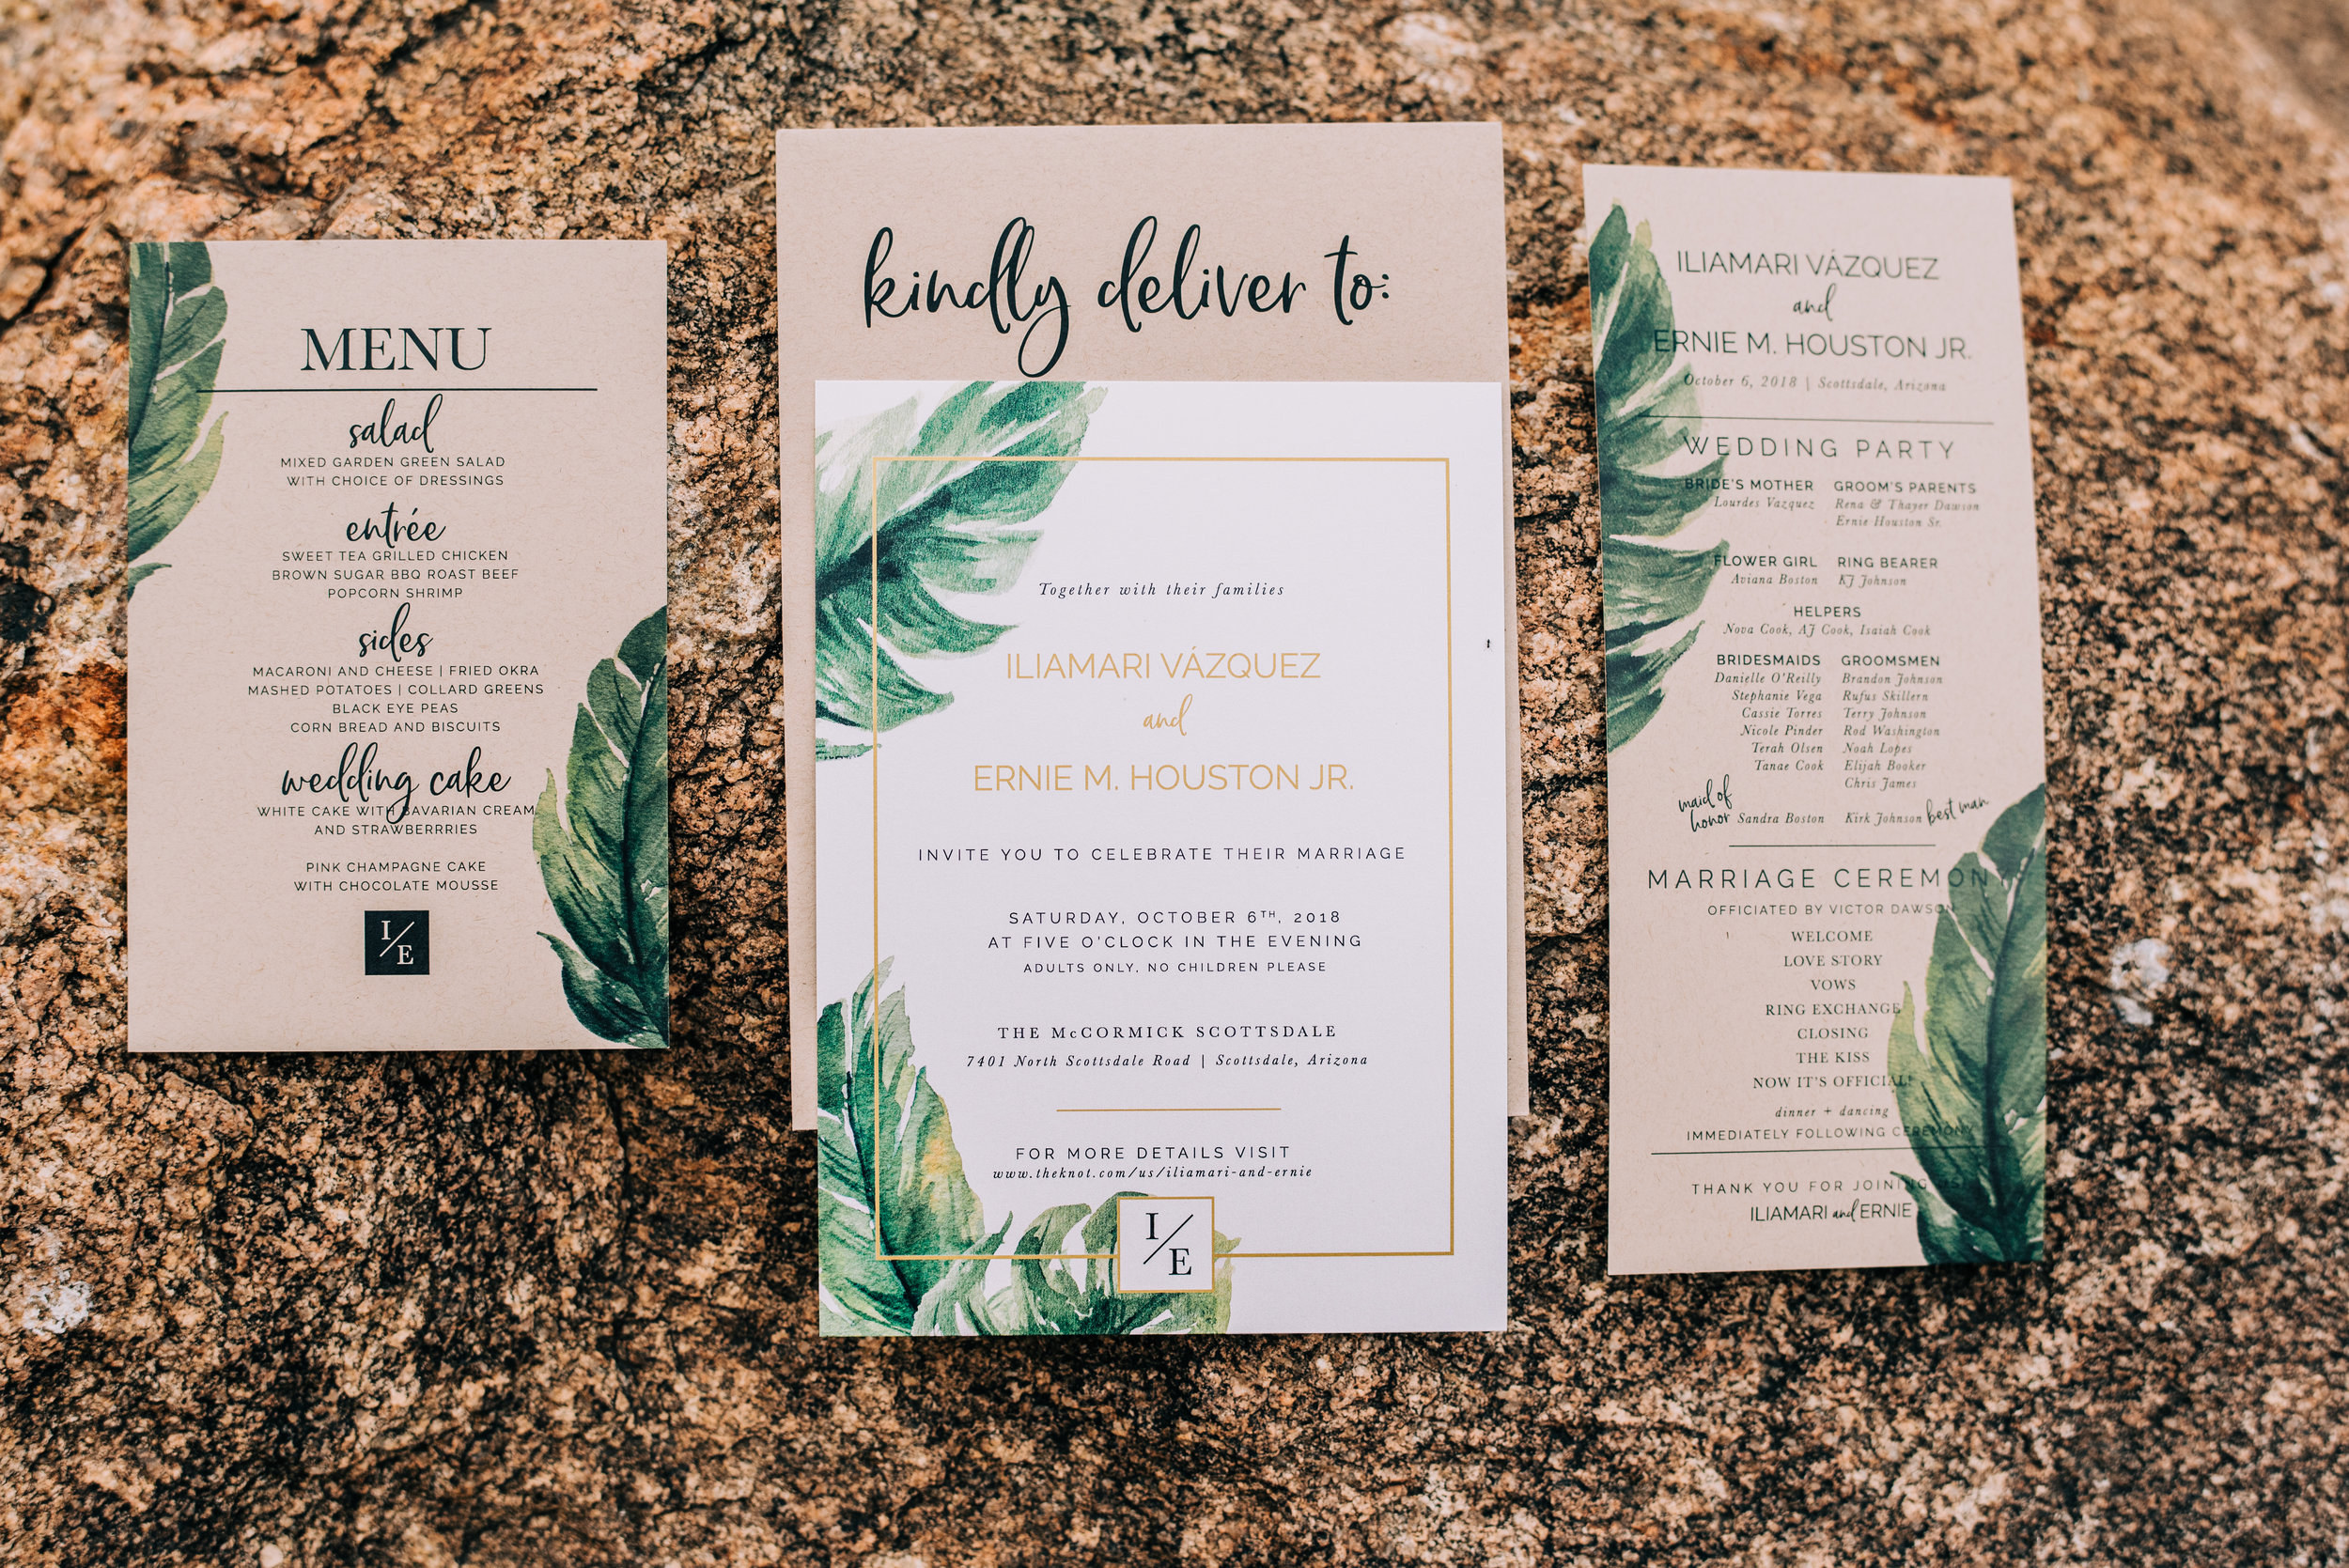 1 wedding invitation wedding ceremony program reception dinner menu tropical wedding invitation kraft paper invitation Life Design Events photos by Josh Snyder Photography.jpg